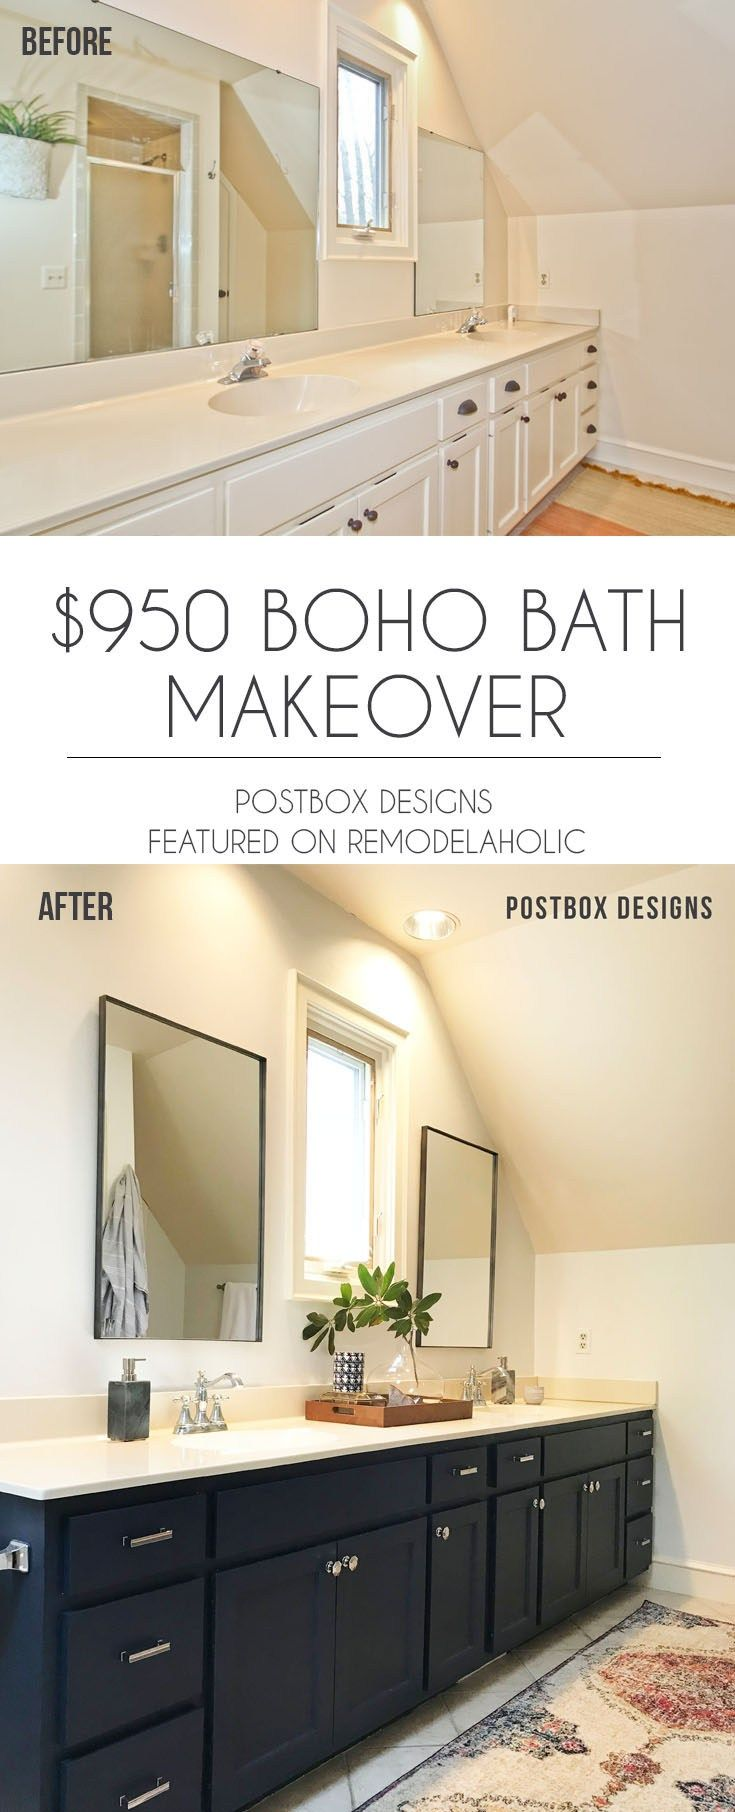 budget bathroom makeover how  updated my without  full remodel also diy house renovation ideas with before and after picture rh pinterest